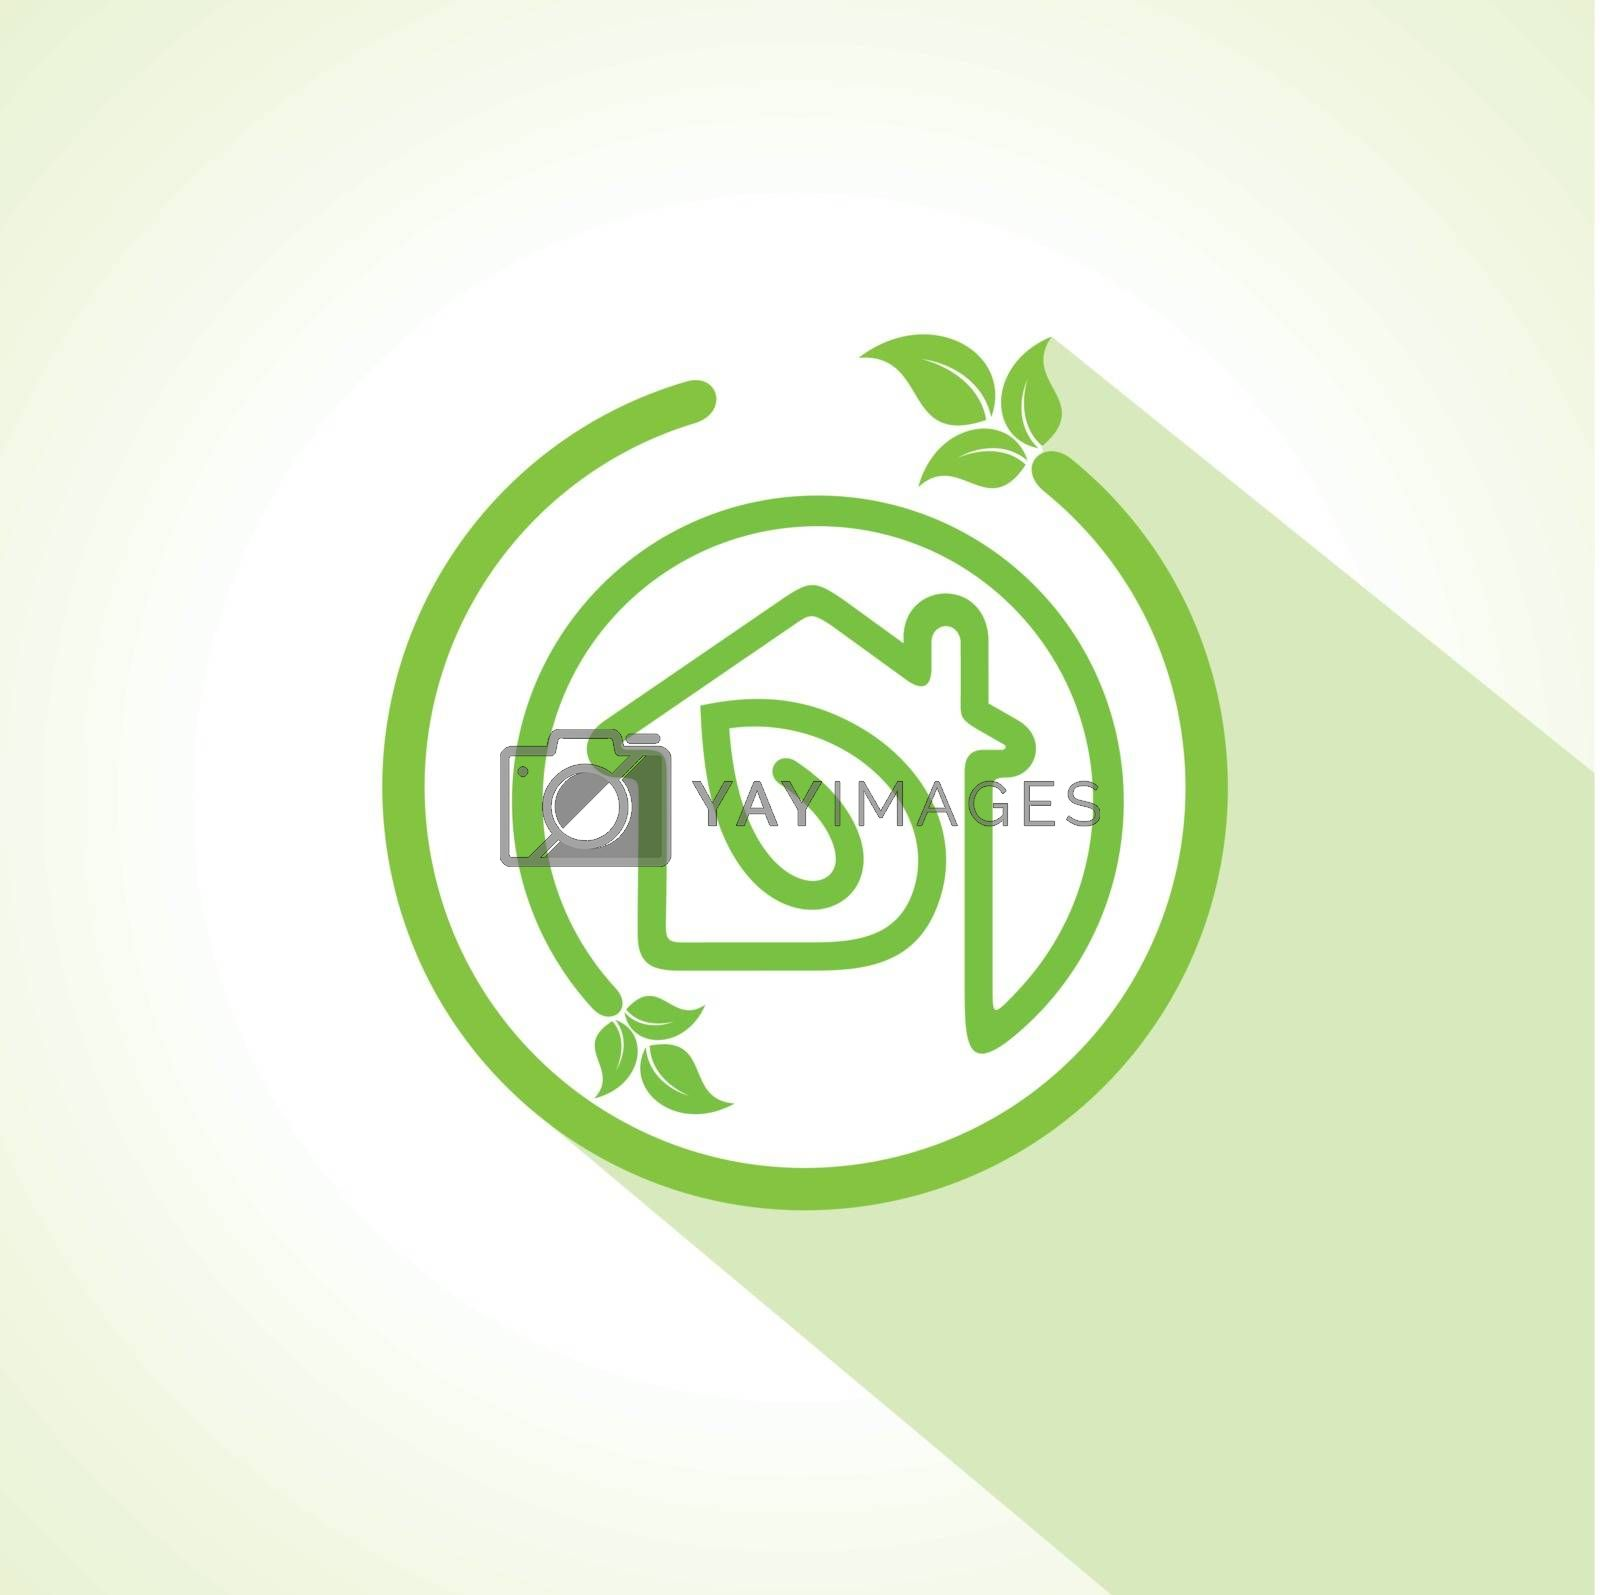 Eco home icon with leaf